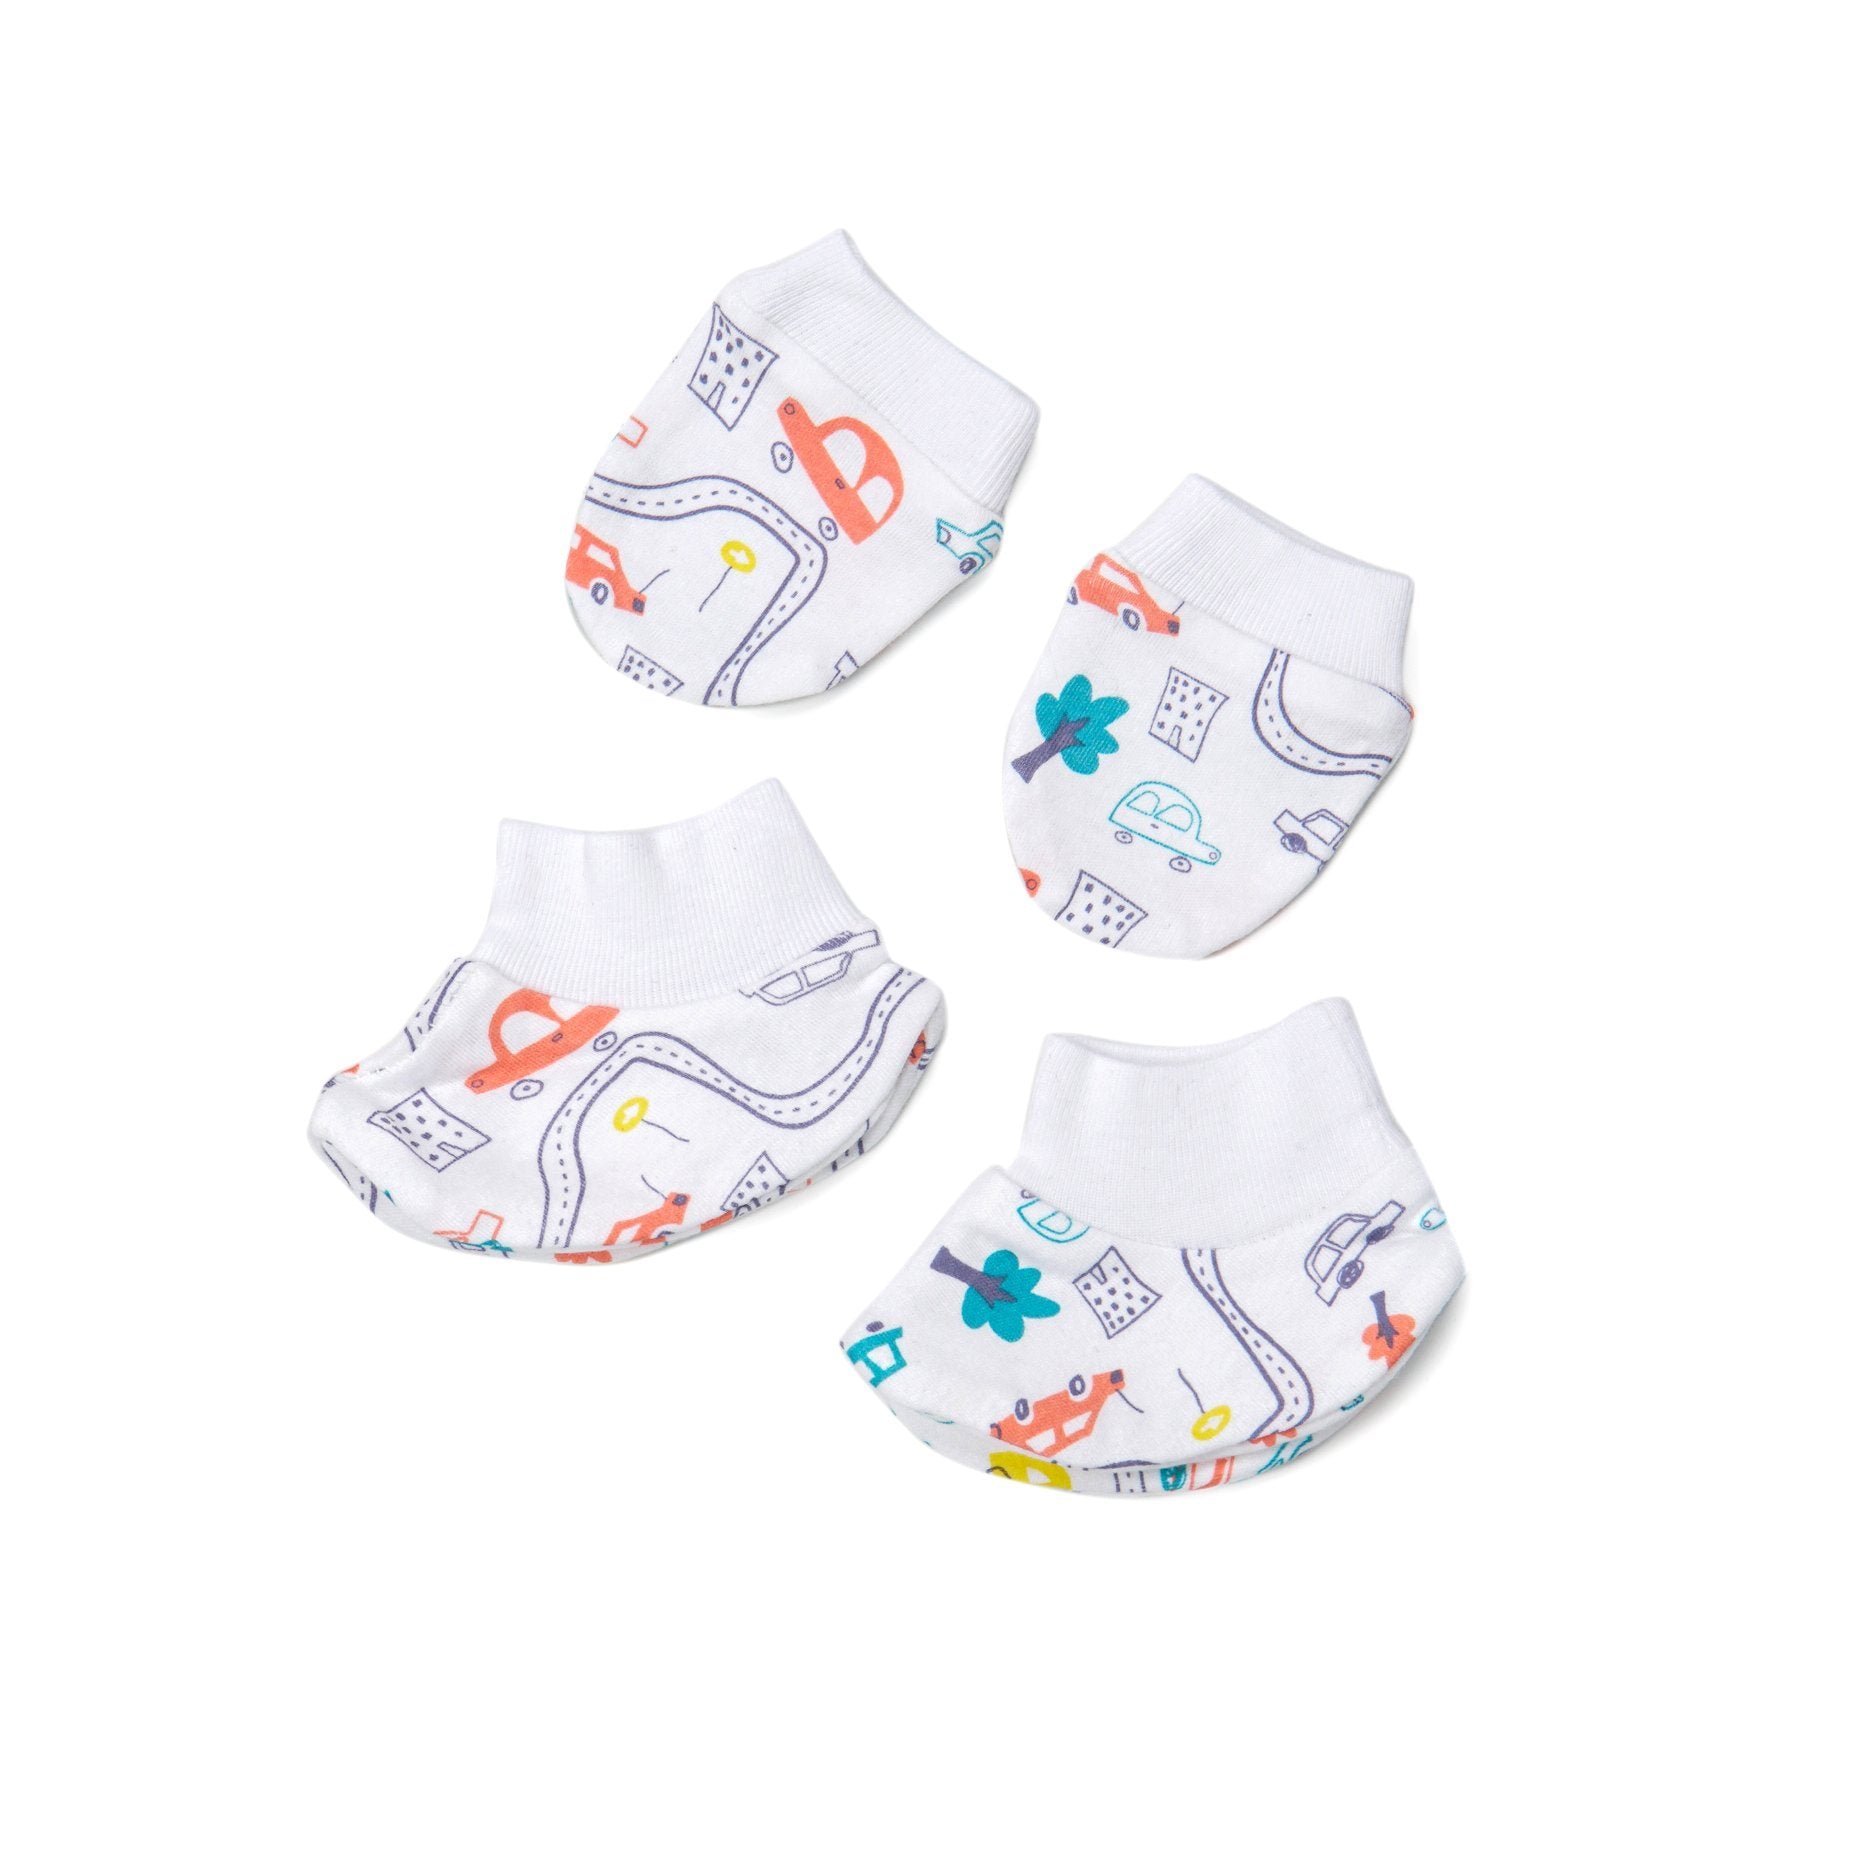 Poney Essential Boys Mitten & Bottie 80025